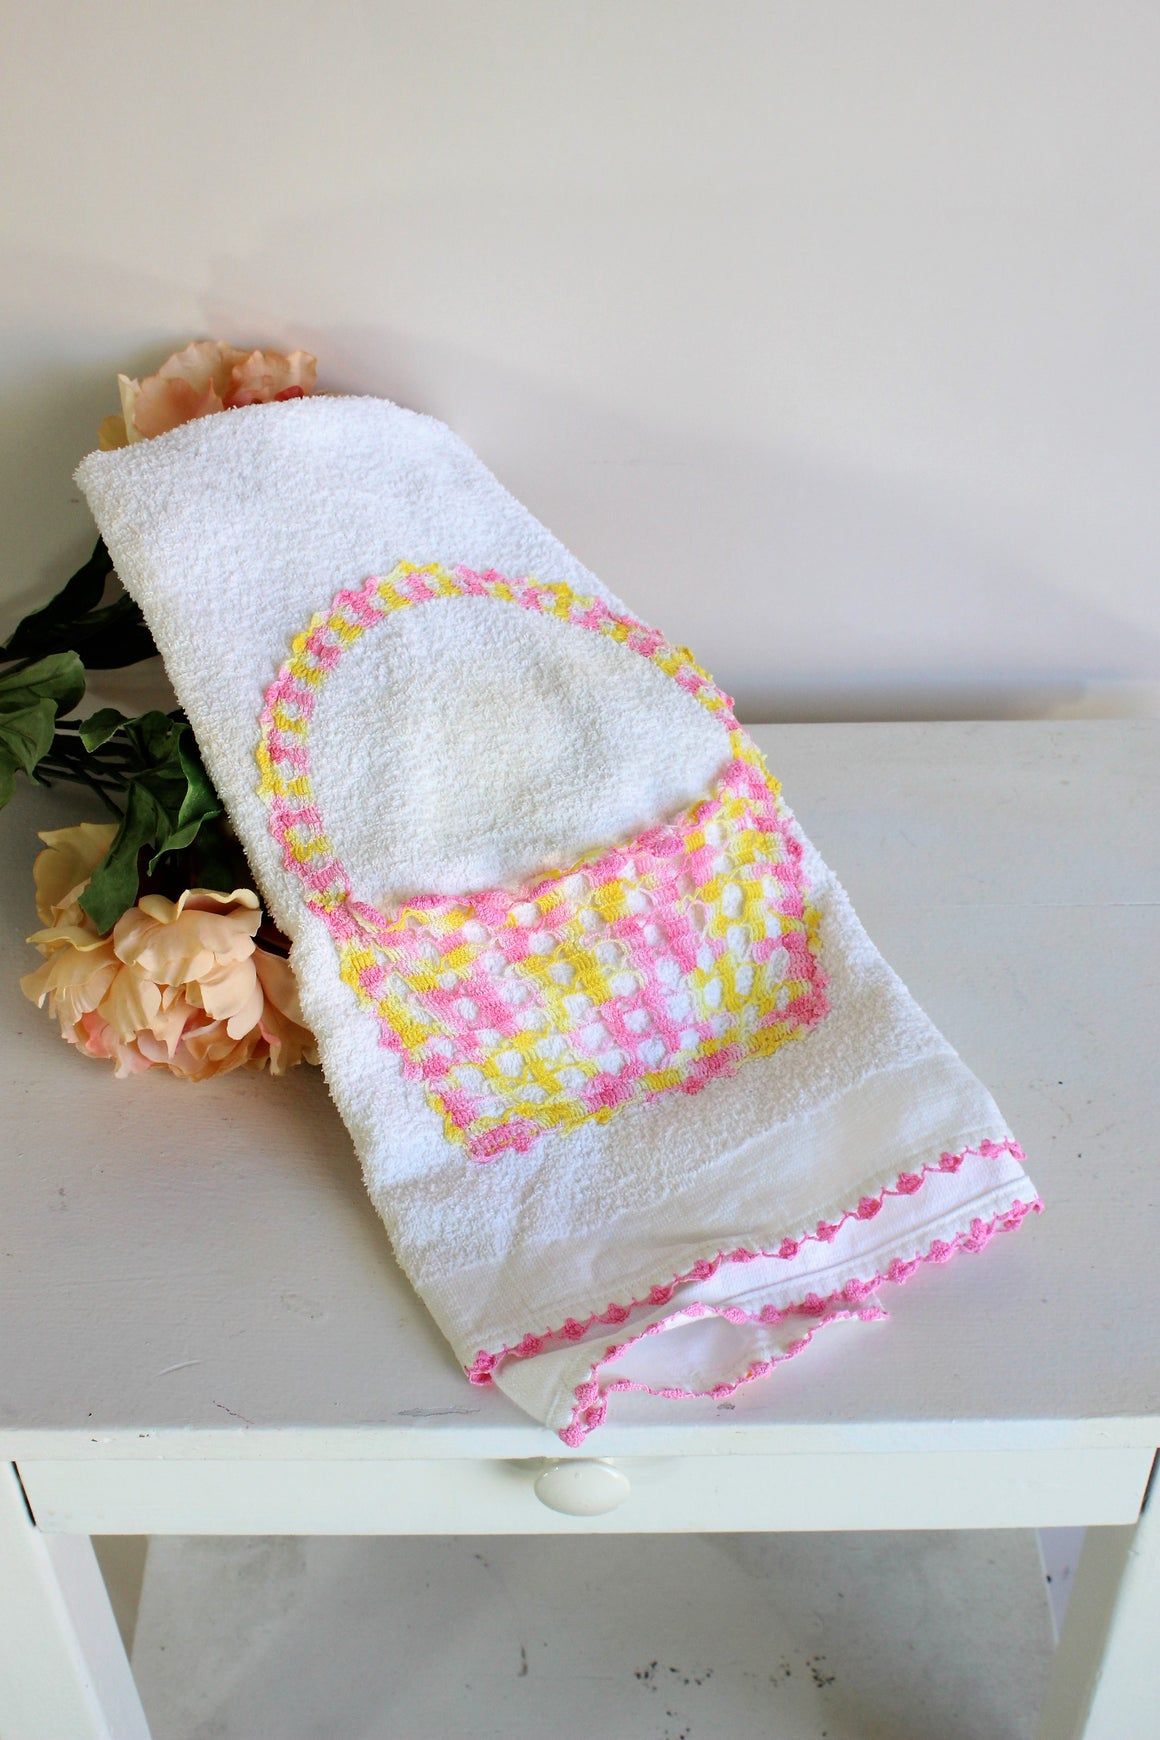 Vintage 1980s Cone Terrycloth Towel With Crochet Flower Basket Pocket